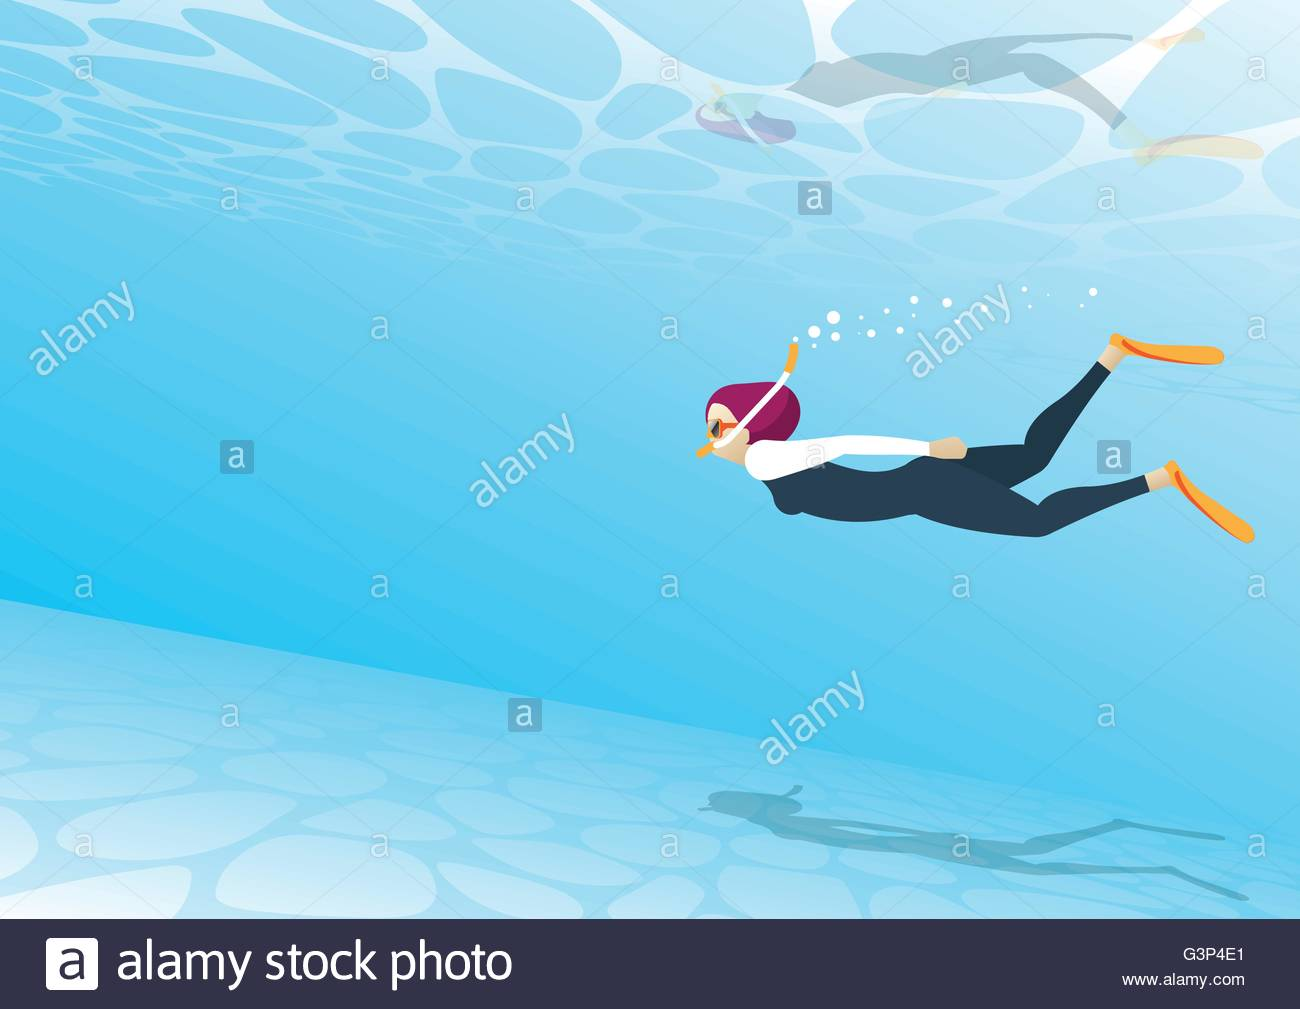 A woman snorkeling - Stock Vector